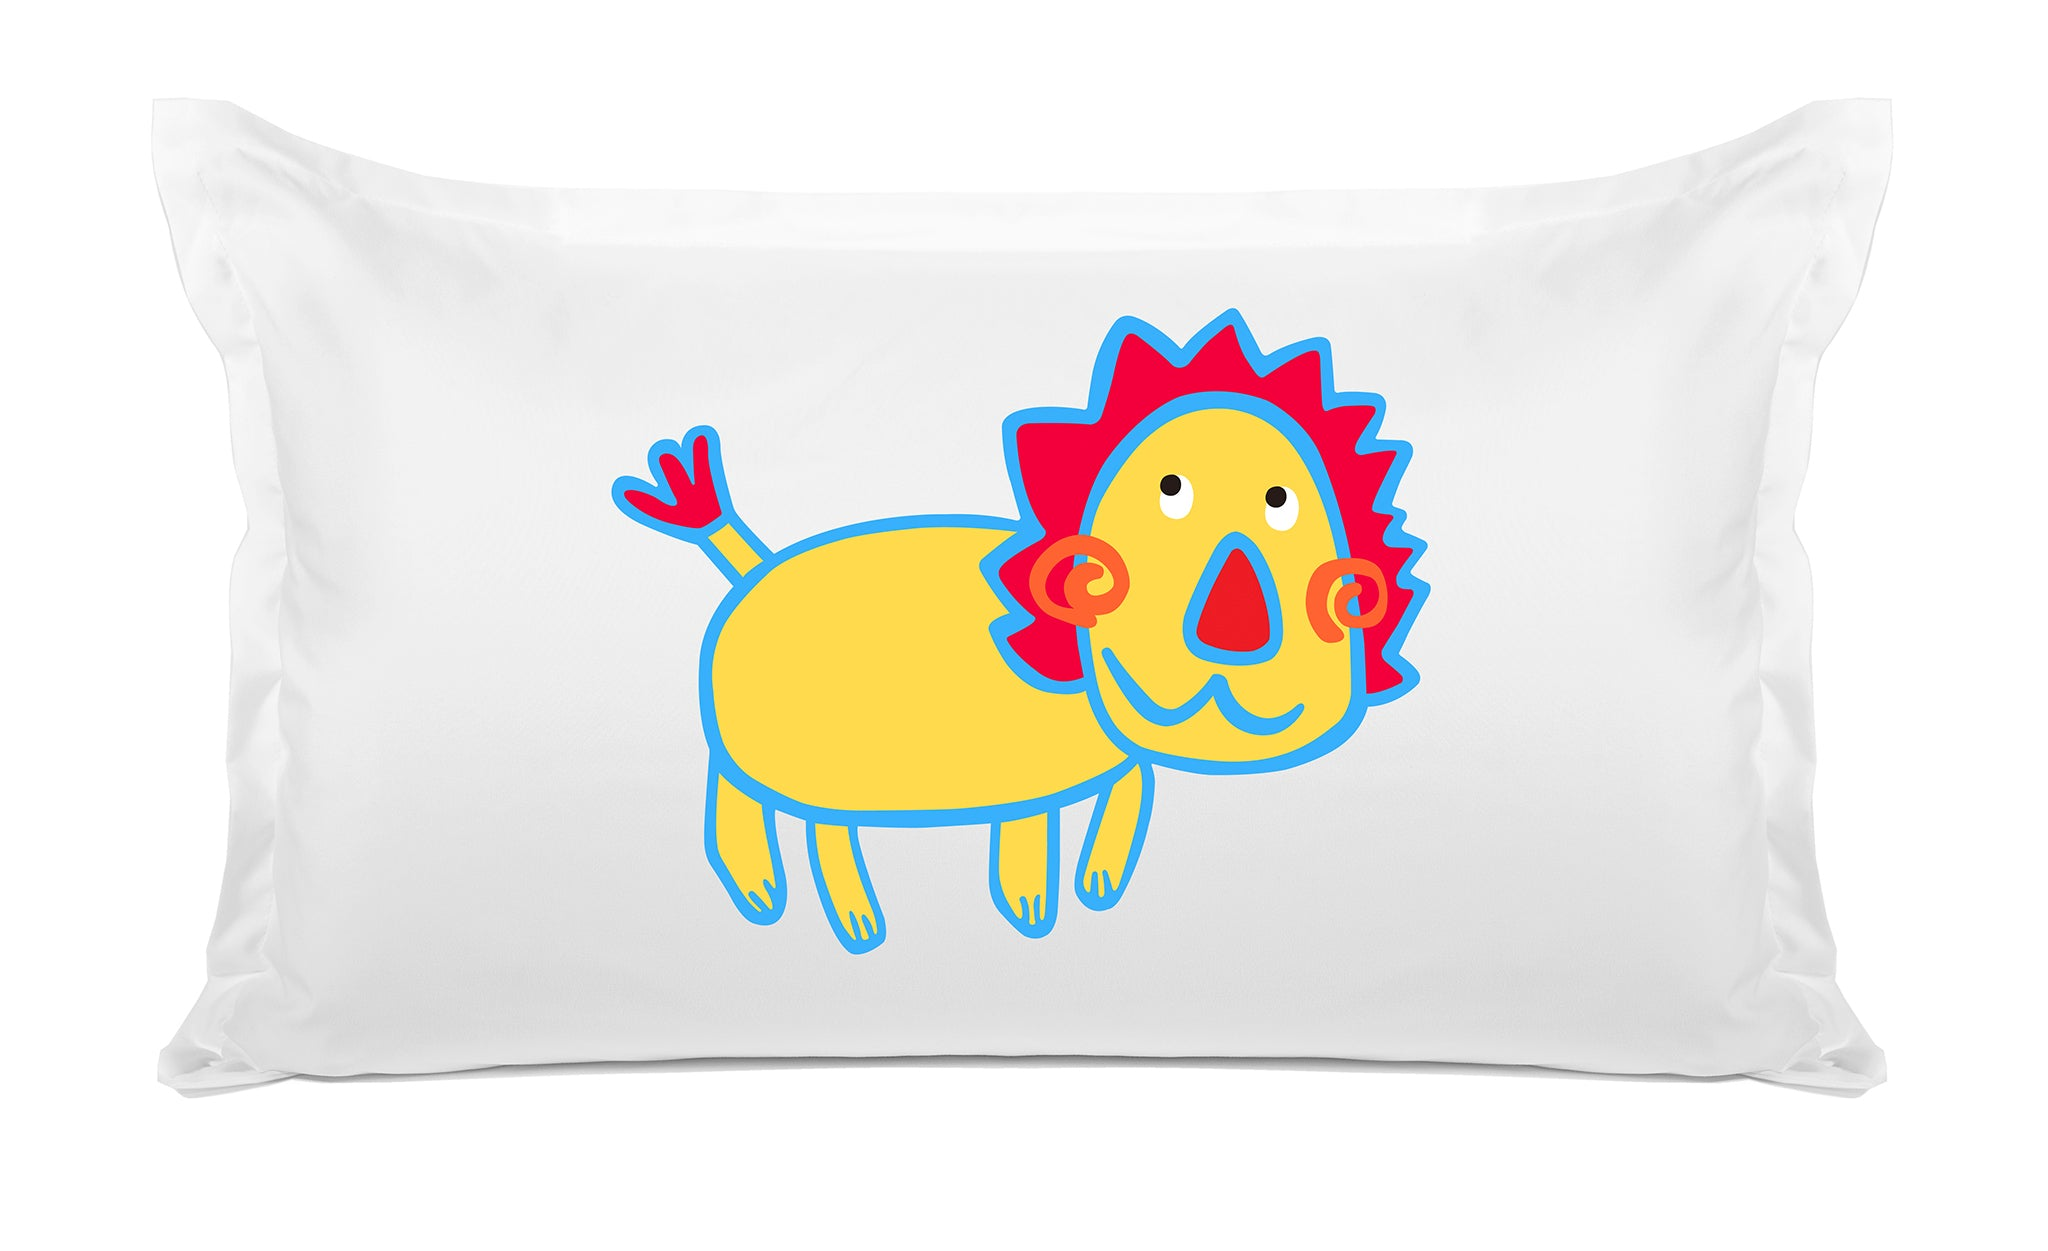 Gold Lion - Personalized Kids Pillowcase Collection